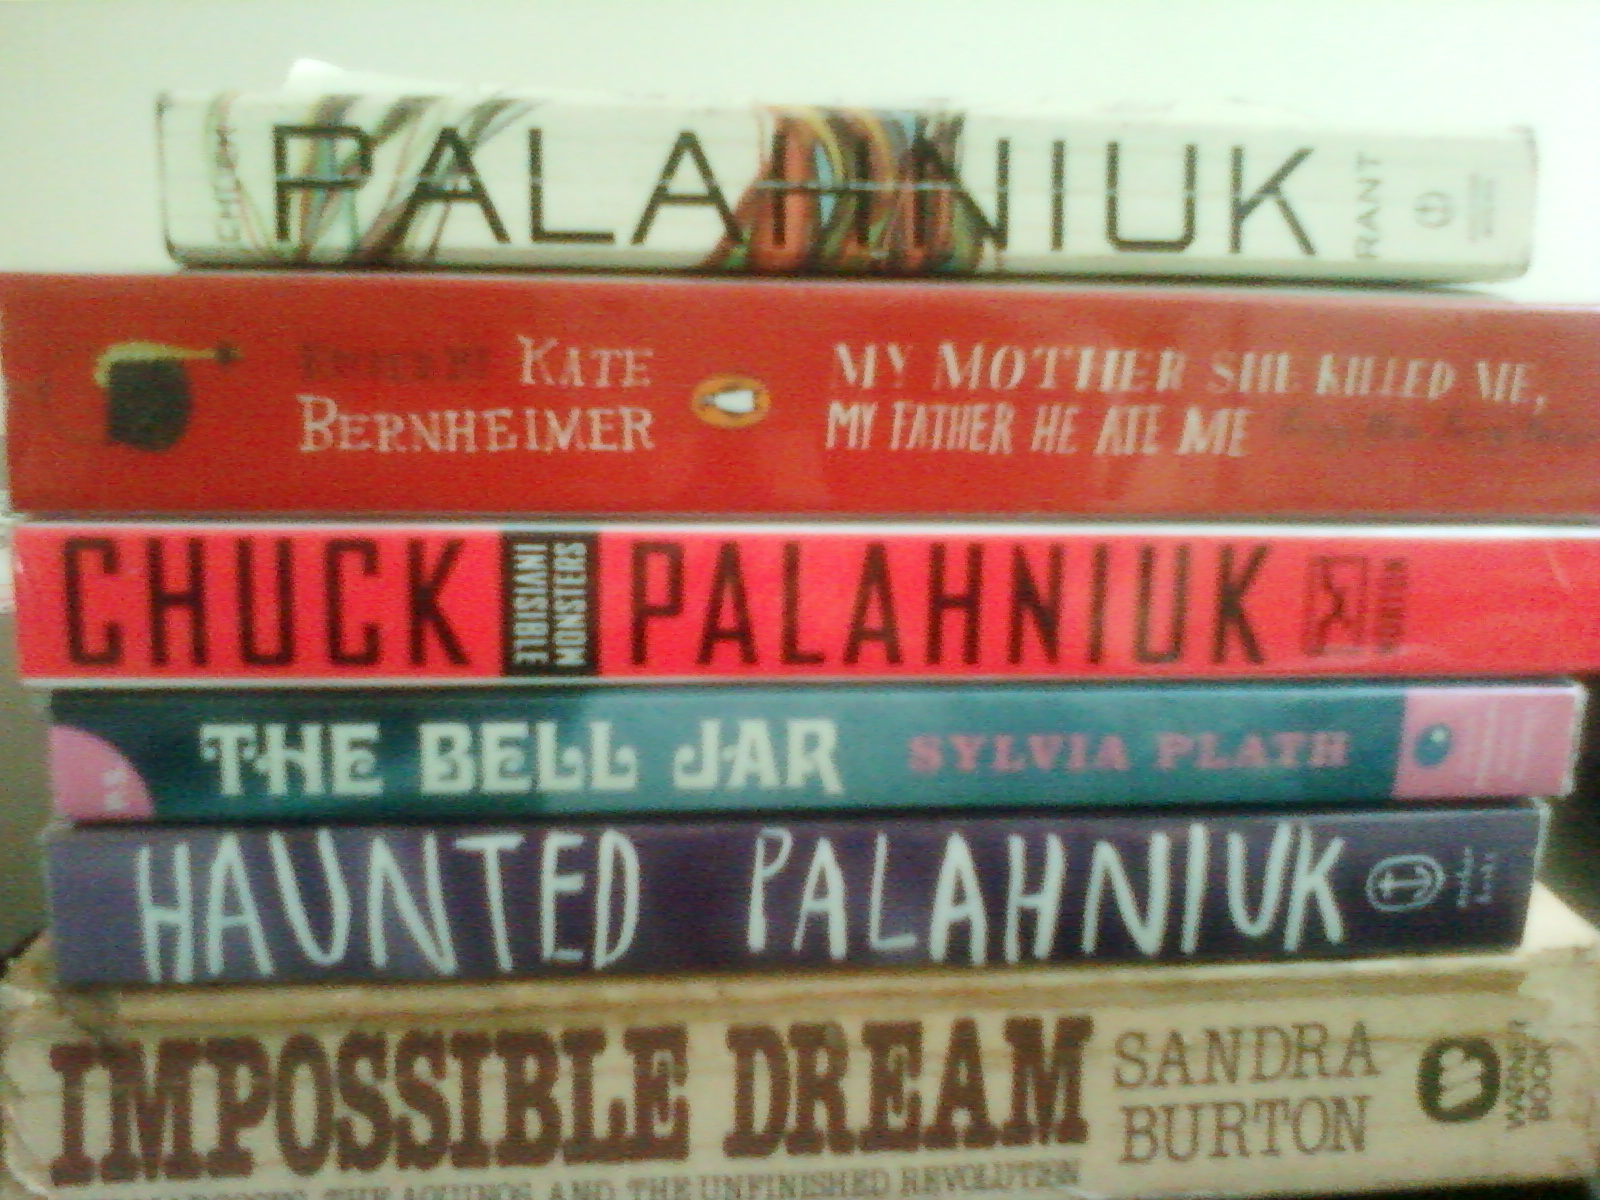 "survivor chuck palahniuk essay Chuck palahniuk writers workshop essays dissertation constitution formelle gave me my new life as a writer""–chuck palahniukapr 19, 2012 survivor."